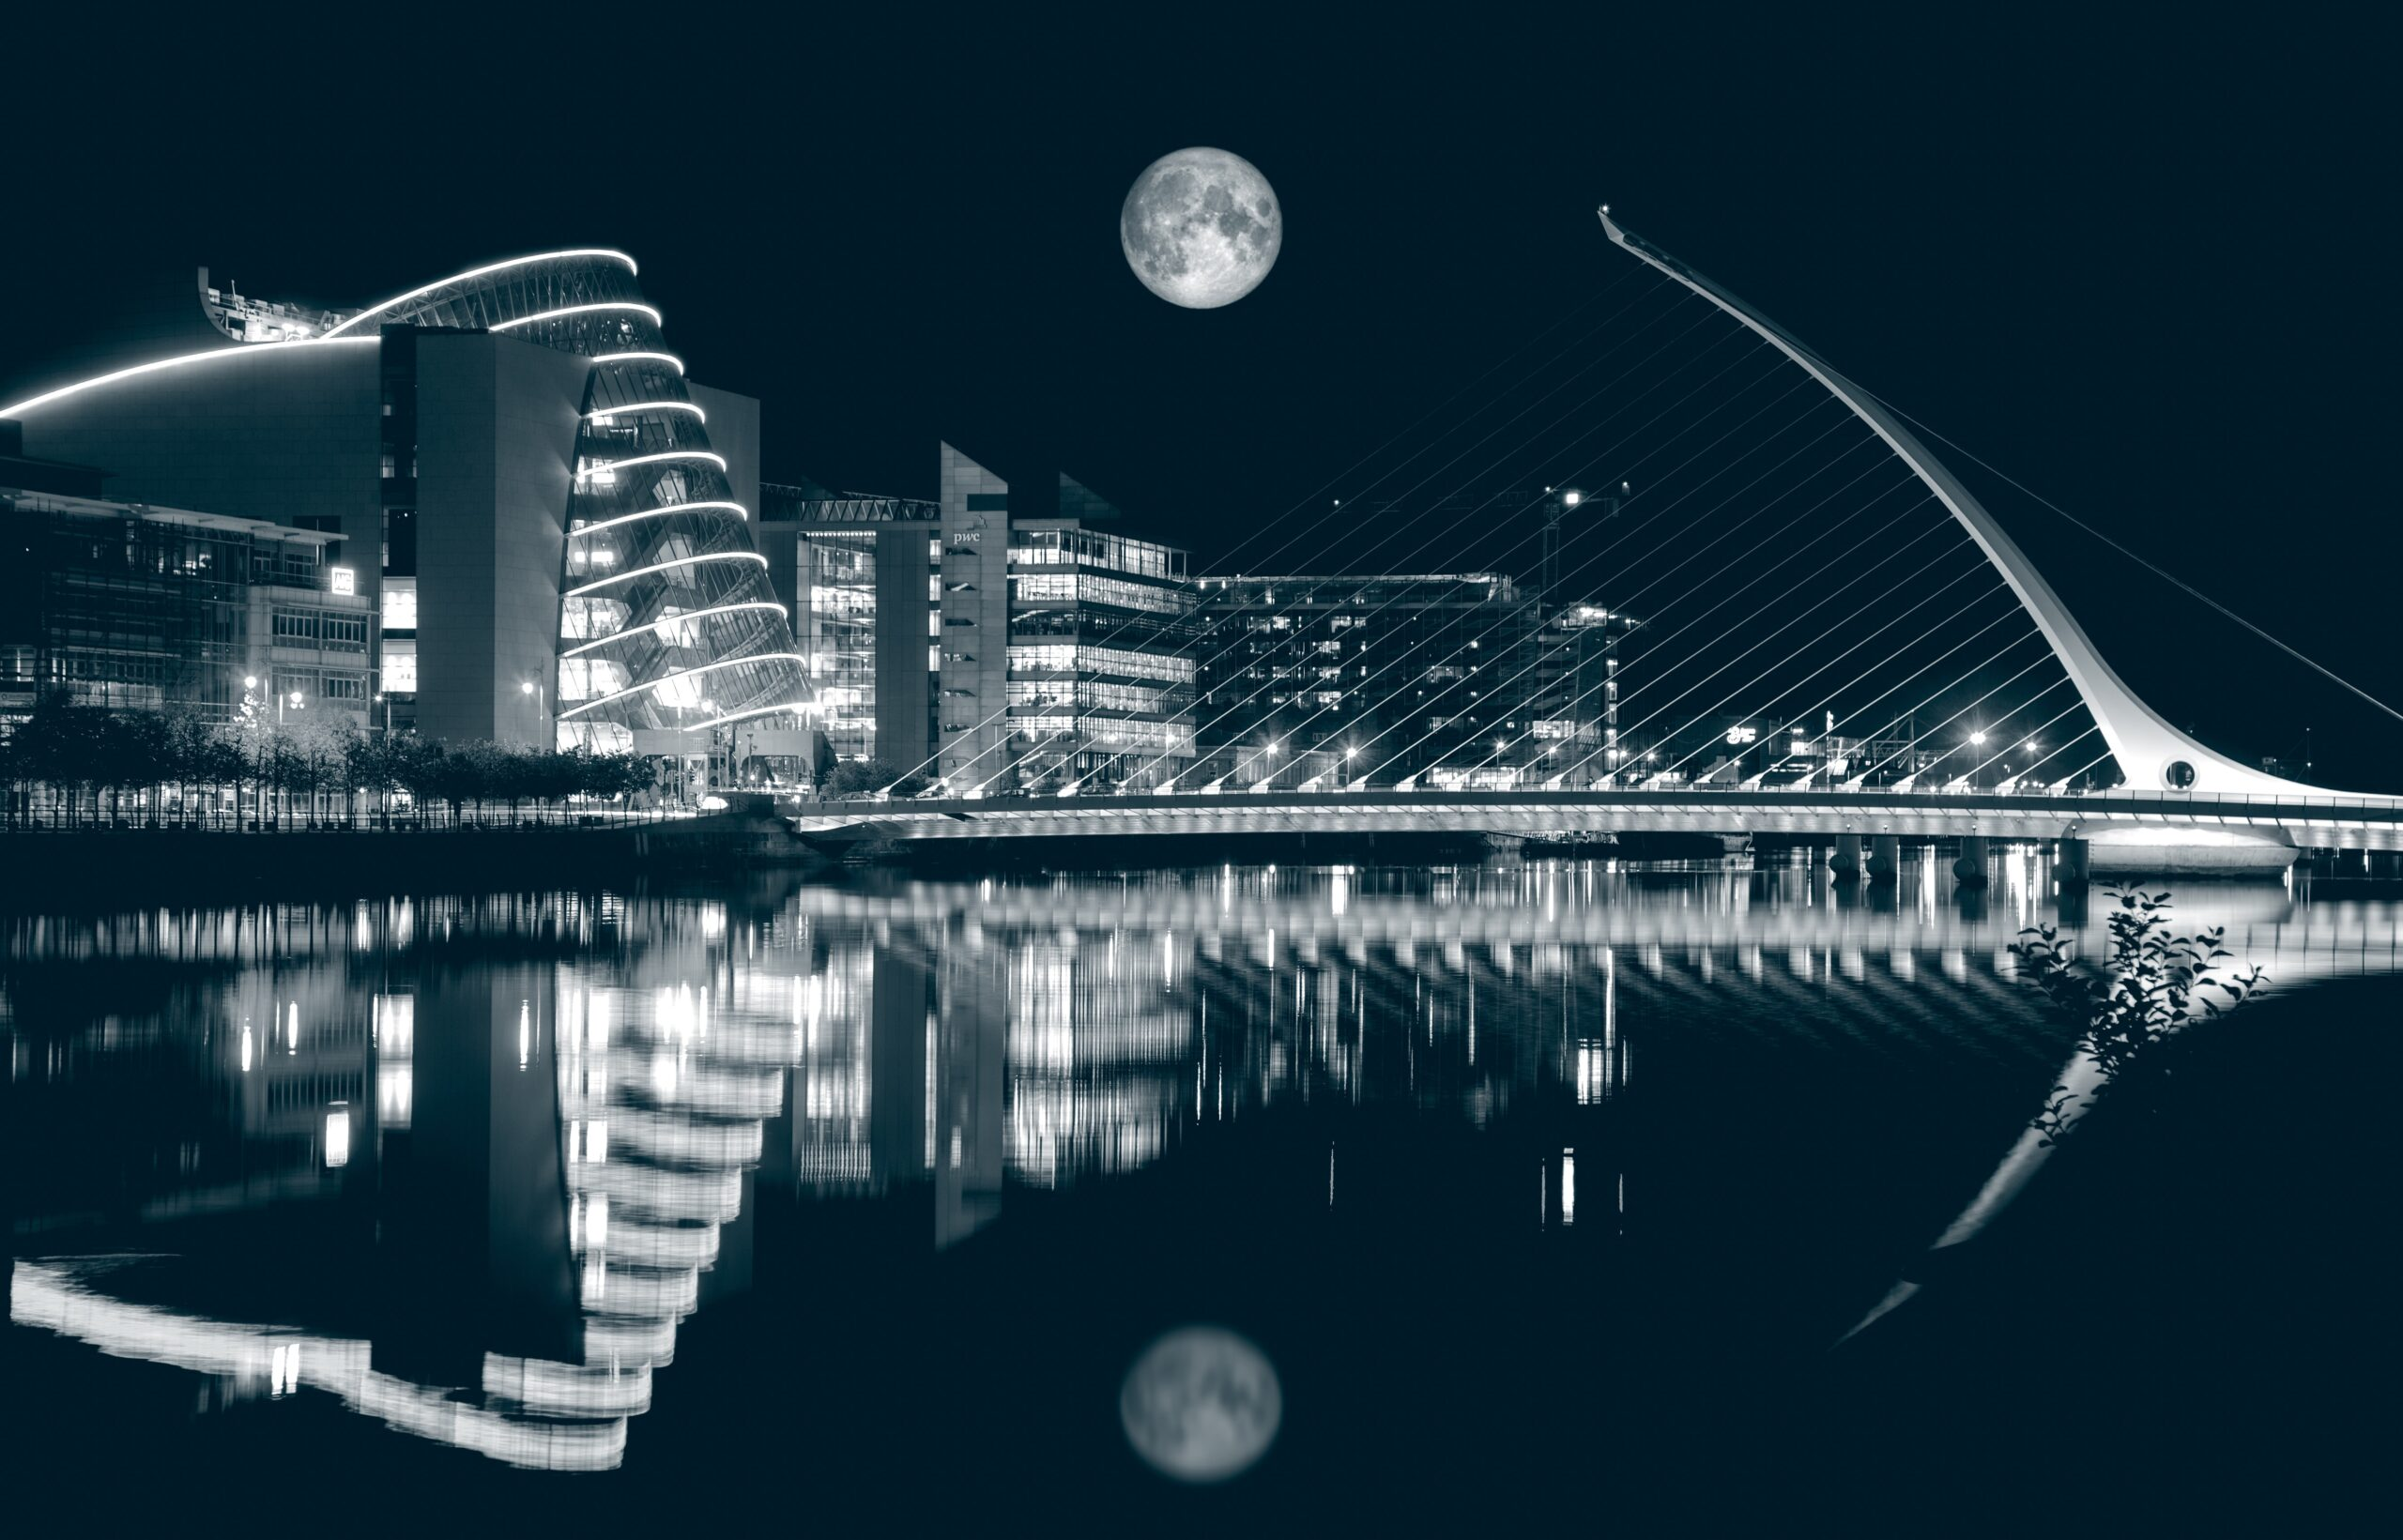 saad-chaudhry-Night with full moon over river Dublin-unsplash